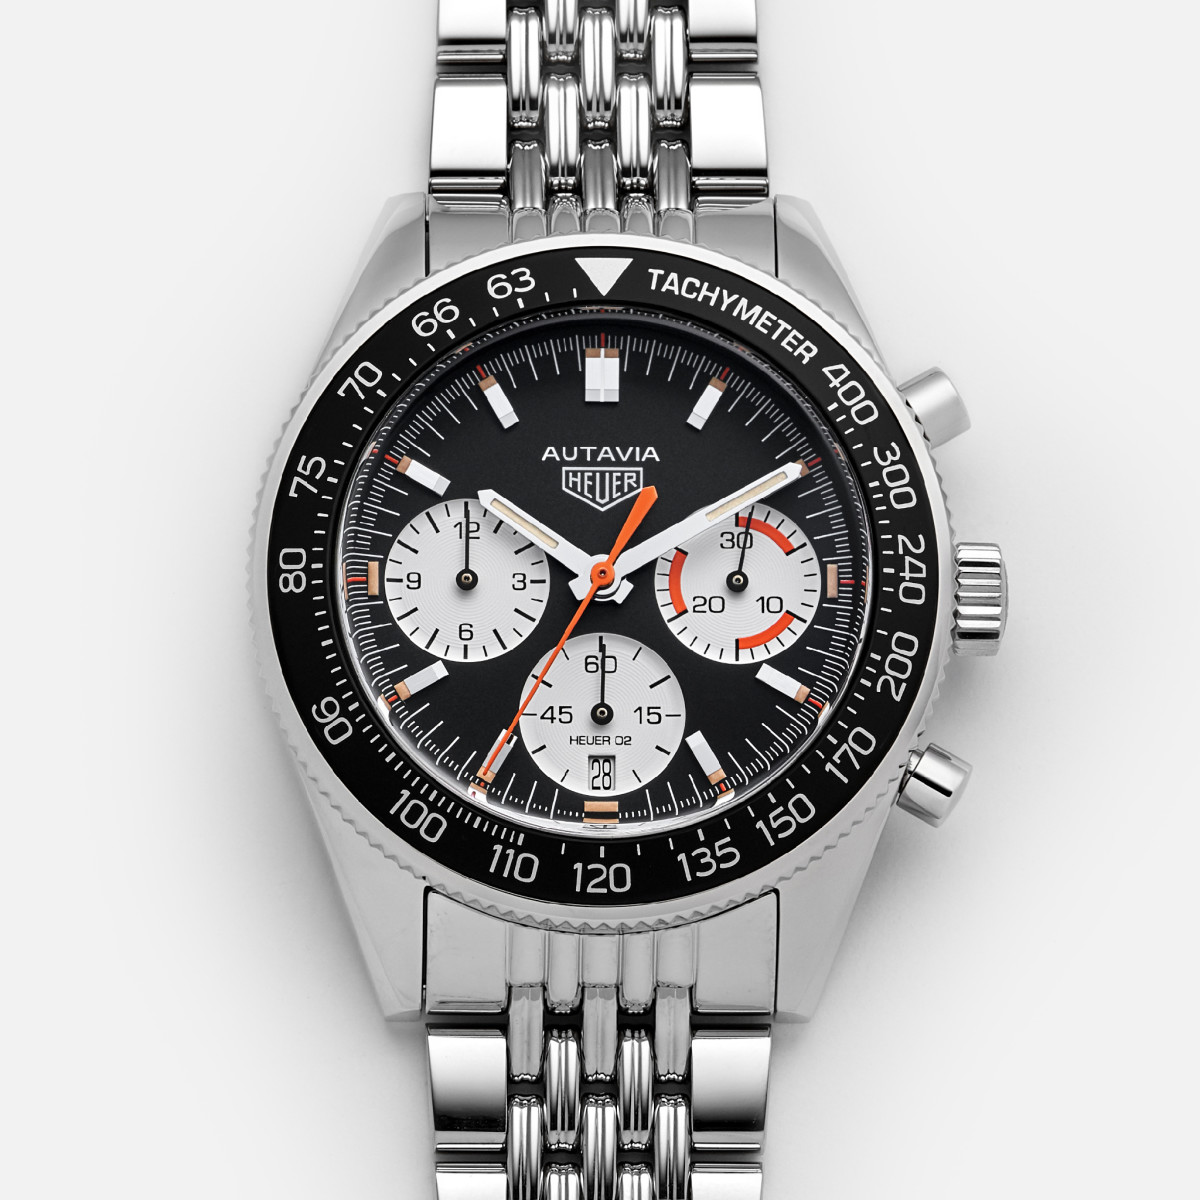 Autavia Calibre Heuer 02 For HODINKEE